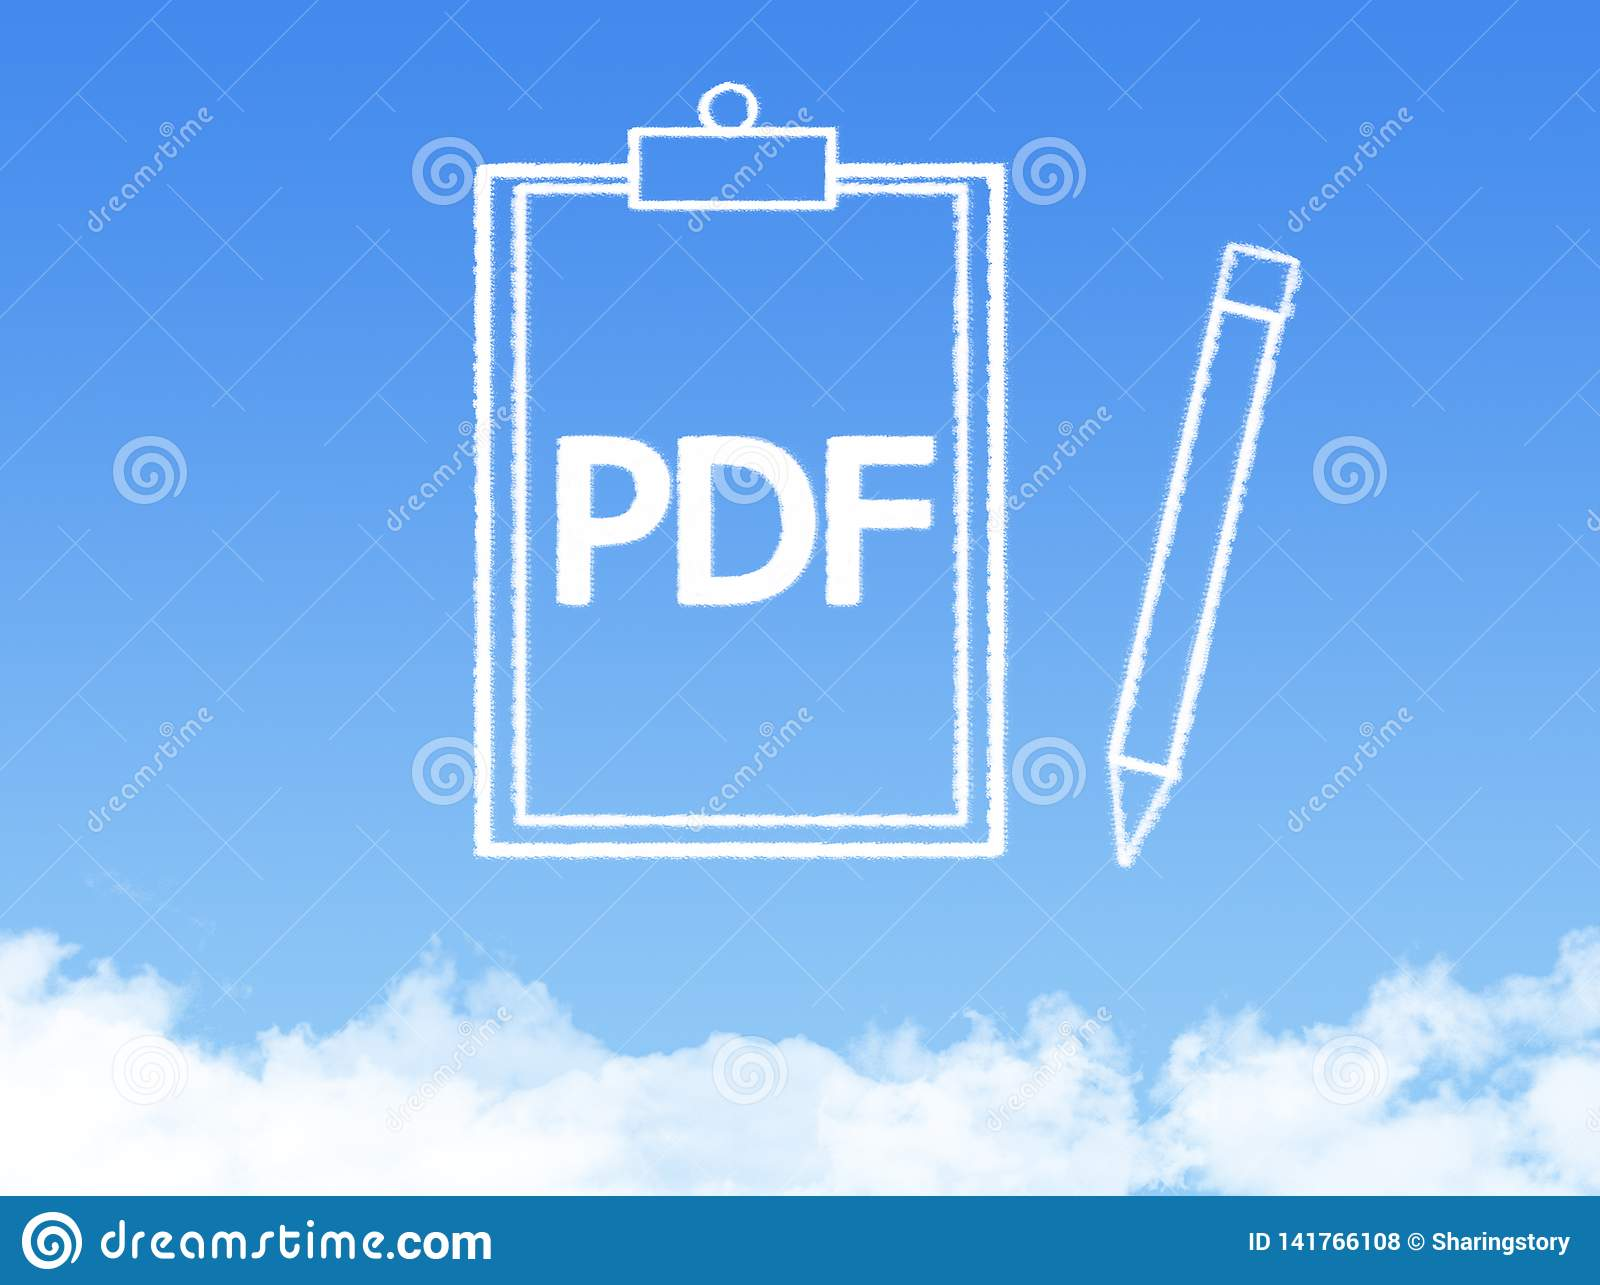 Notepad paper document cloud shape